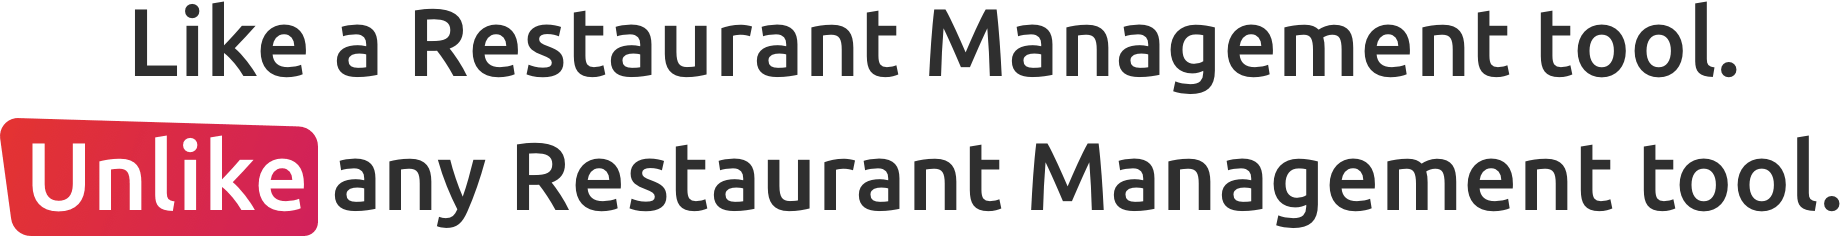 restaurant table management software, restaurant management system software, restaurant management solutions, restaurant ordering software, restaurant management software, restaurant billing software, restaurant inventory management, restaurants software, mala restaurant, business restaurants, restaurant business software, best software for restaurants,